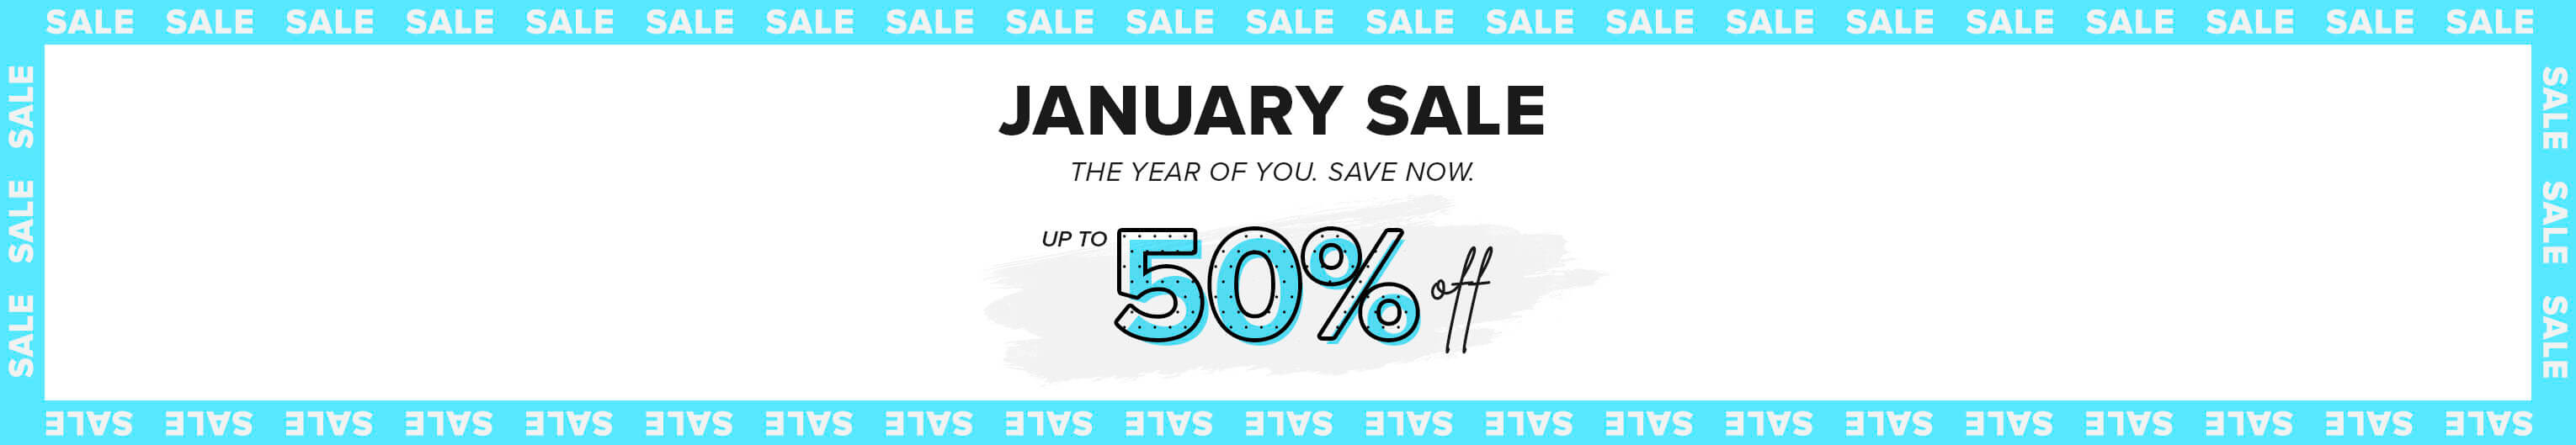 January Sale: Up to 50% Off